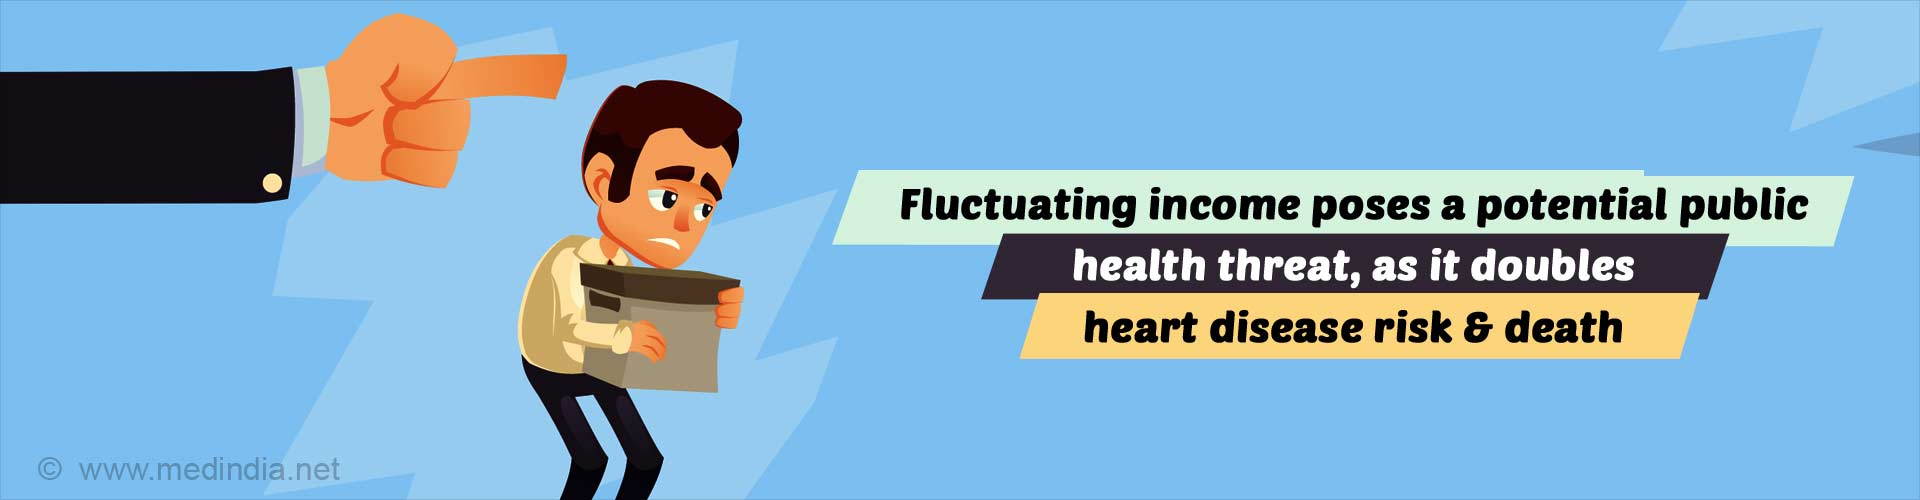 Fluctuating Income May Up Risk of Heart Disease